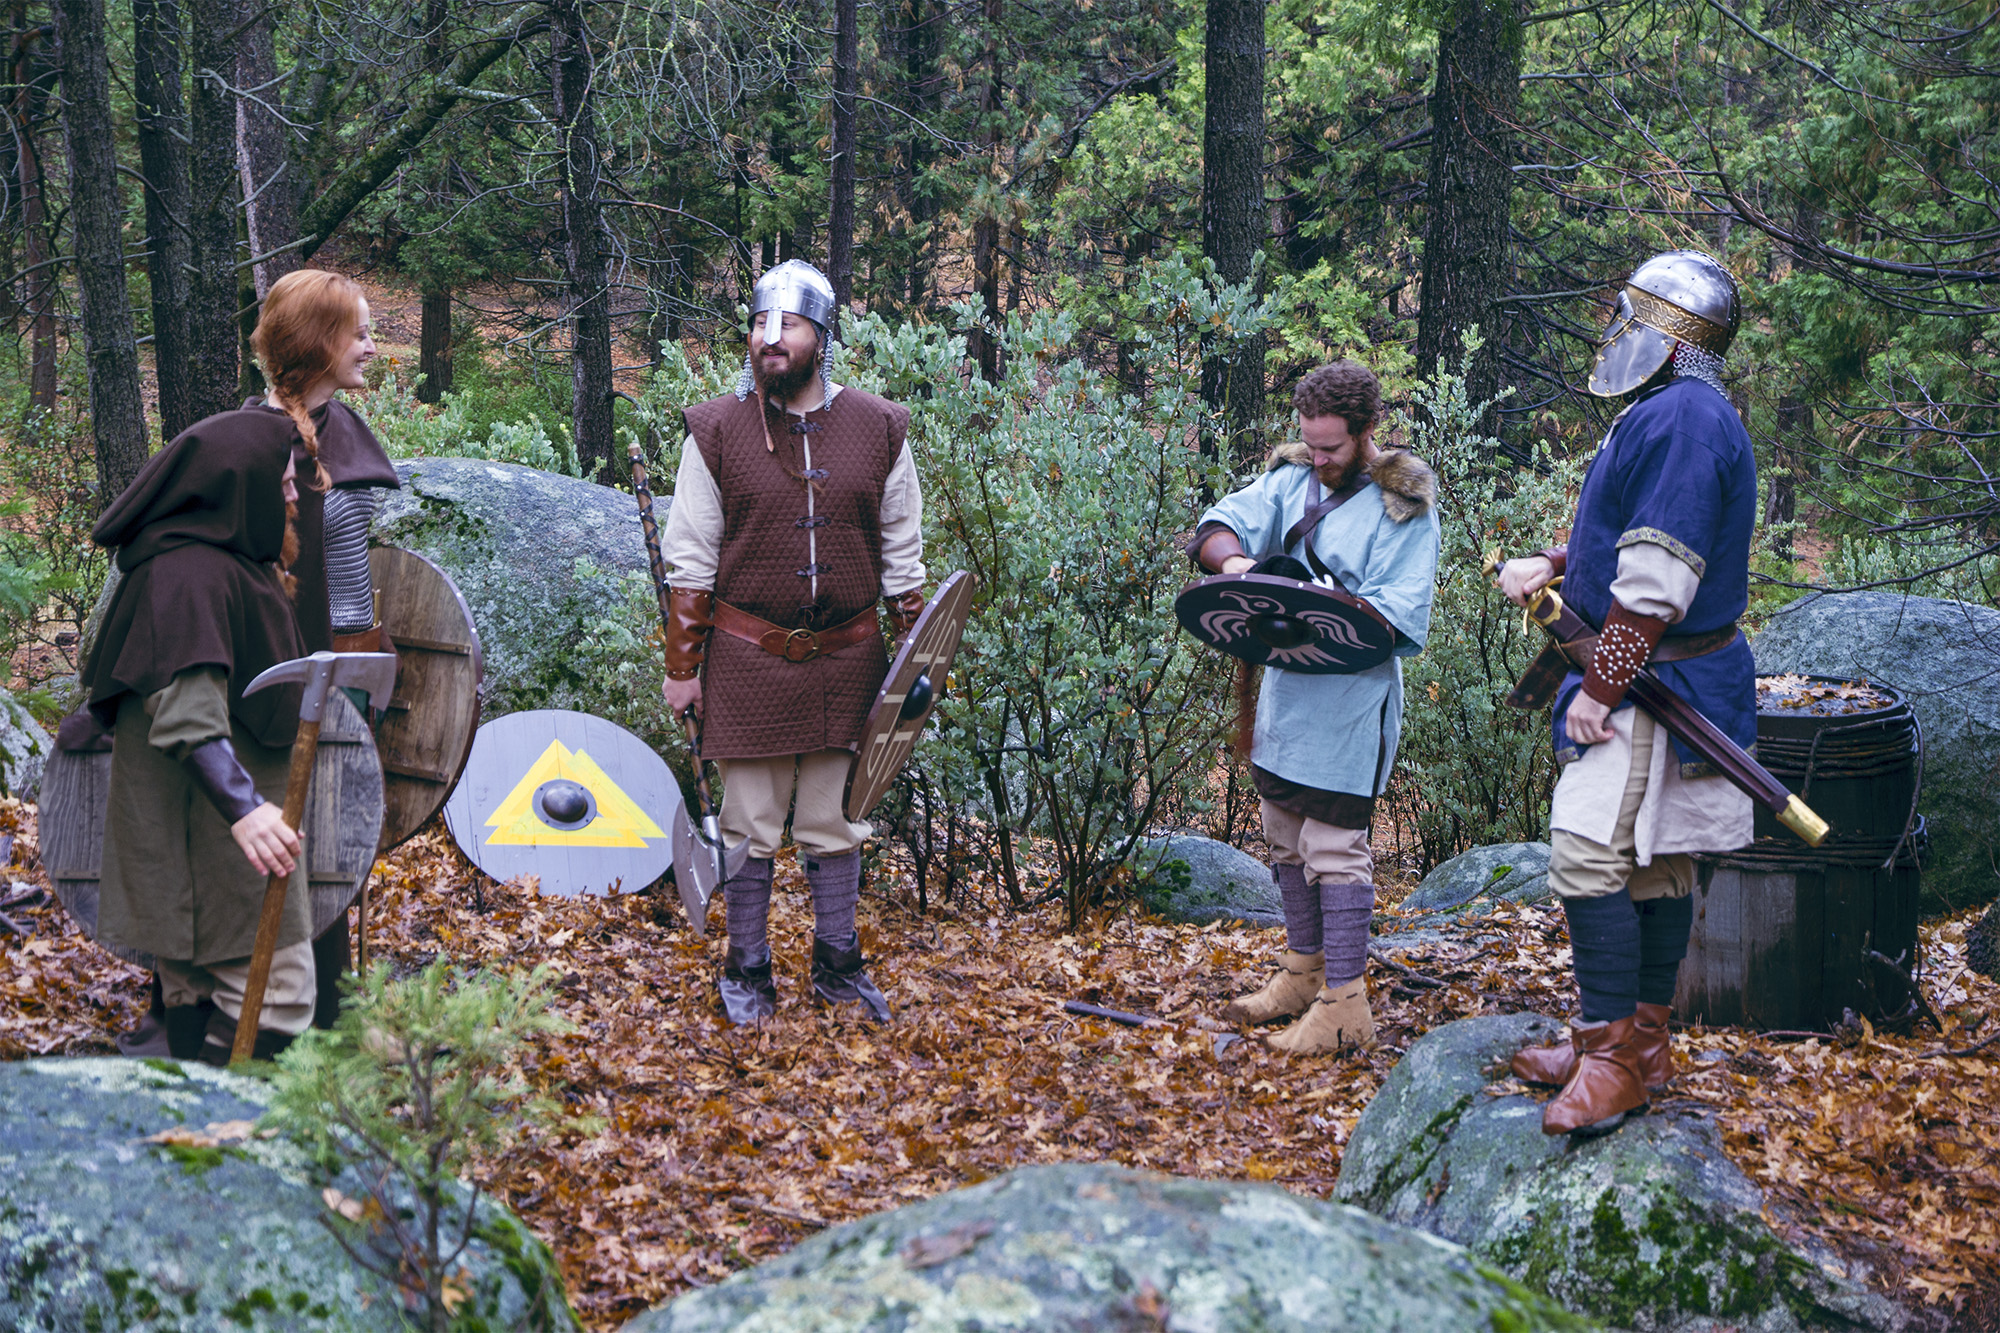 Jeremiah Benjamin, Adele René, Jes Selane, Vince Major and Chris Stathis on the set of Total Awesome Viking Power